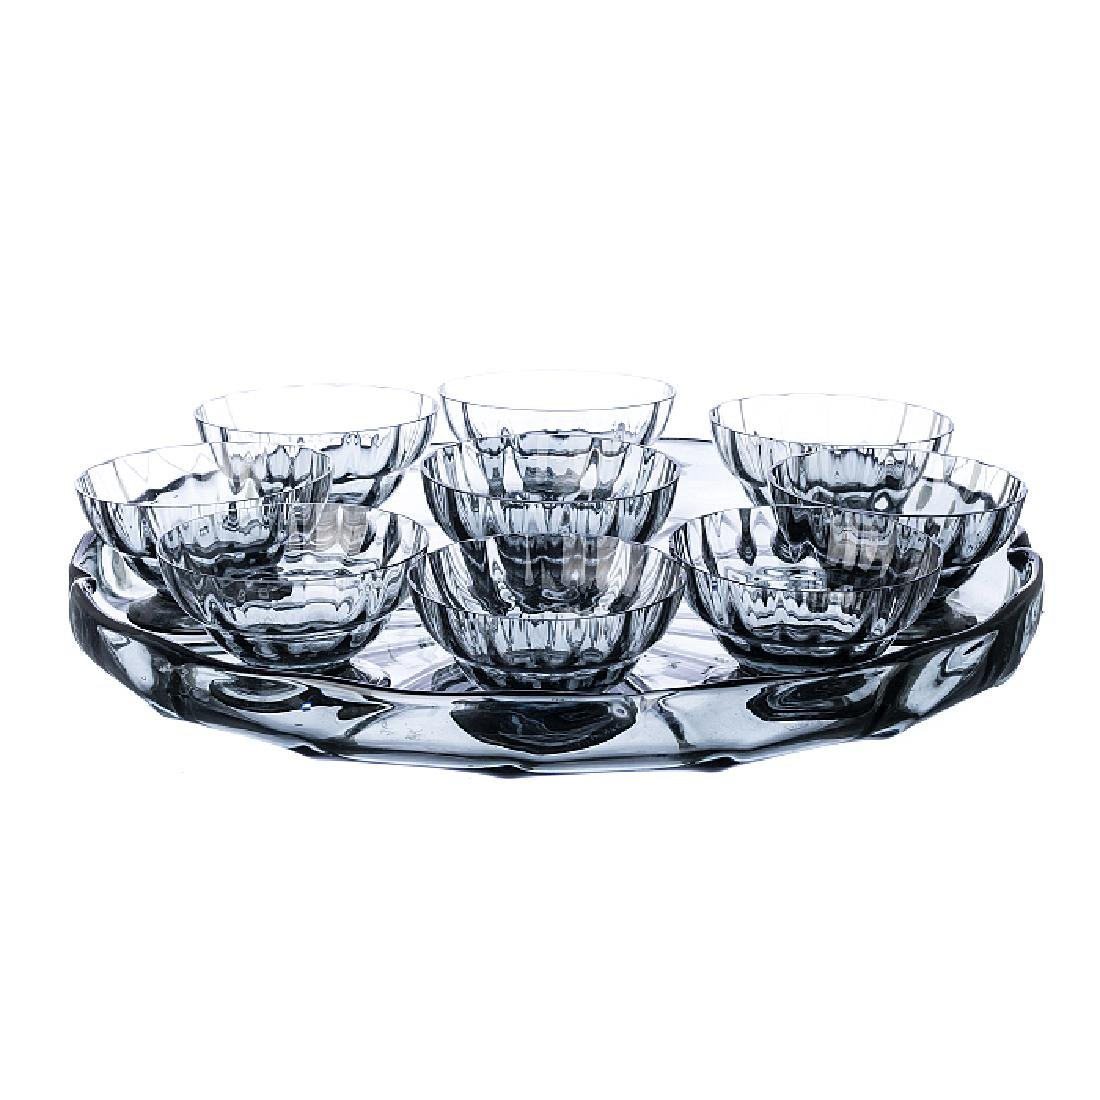 DAUM NANCY - Set with a tray and bowls